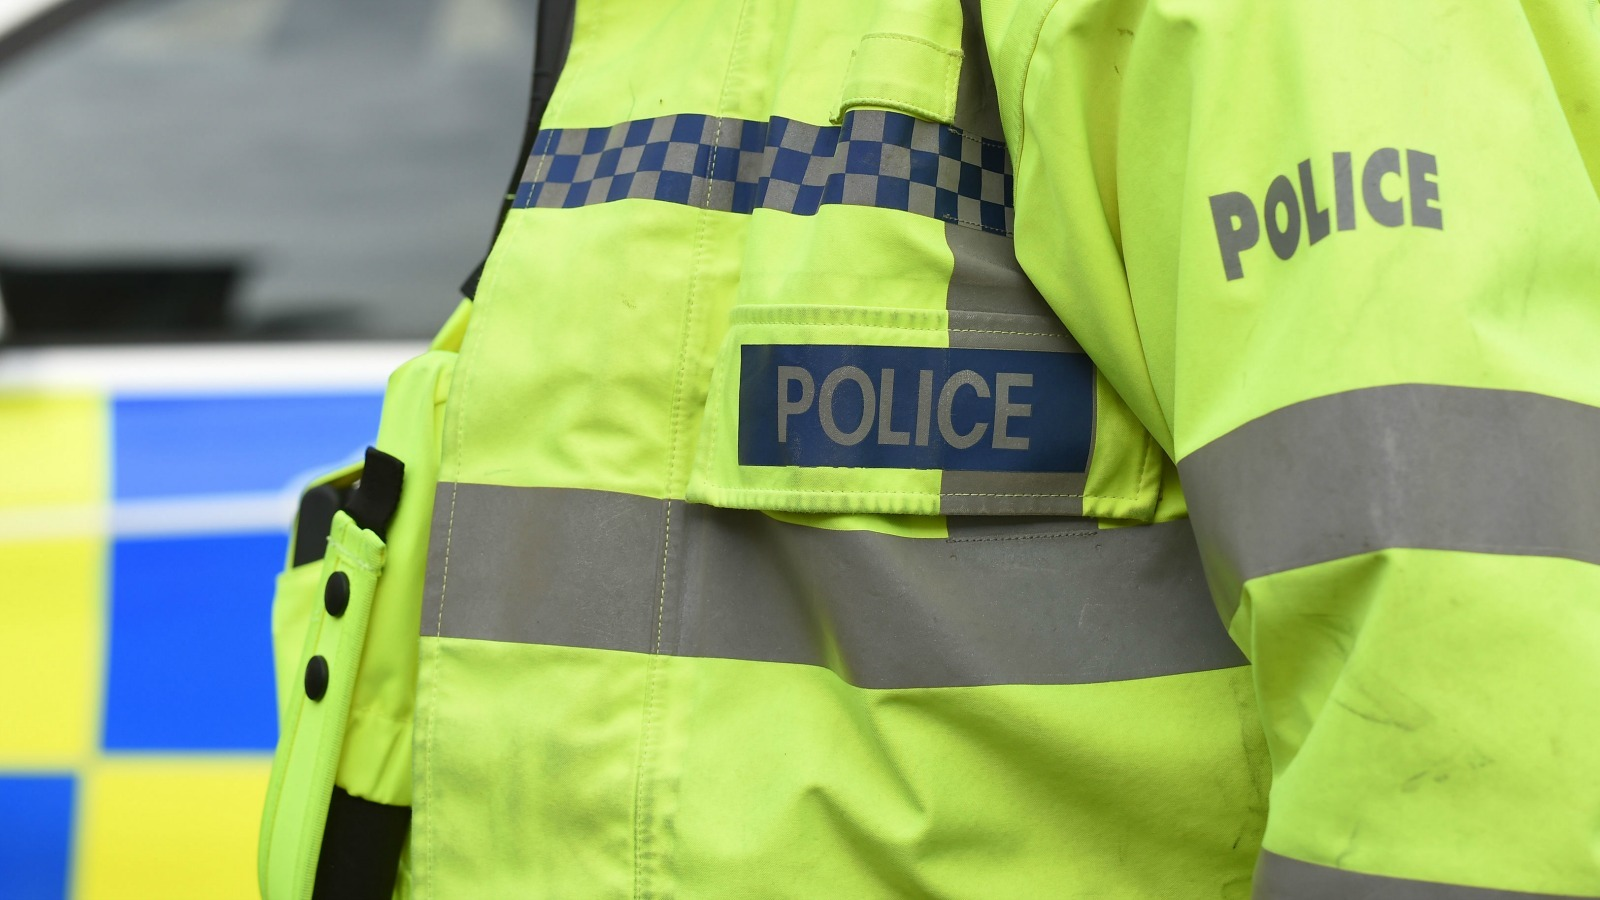 Call for vigilance after 'high number of reported thefts from vehicles' in rural Wrexham